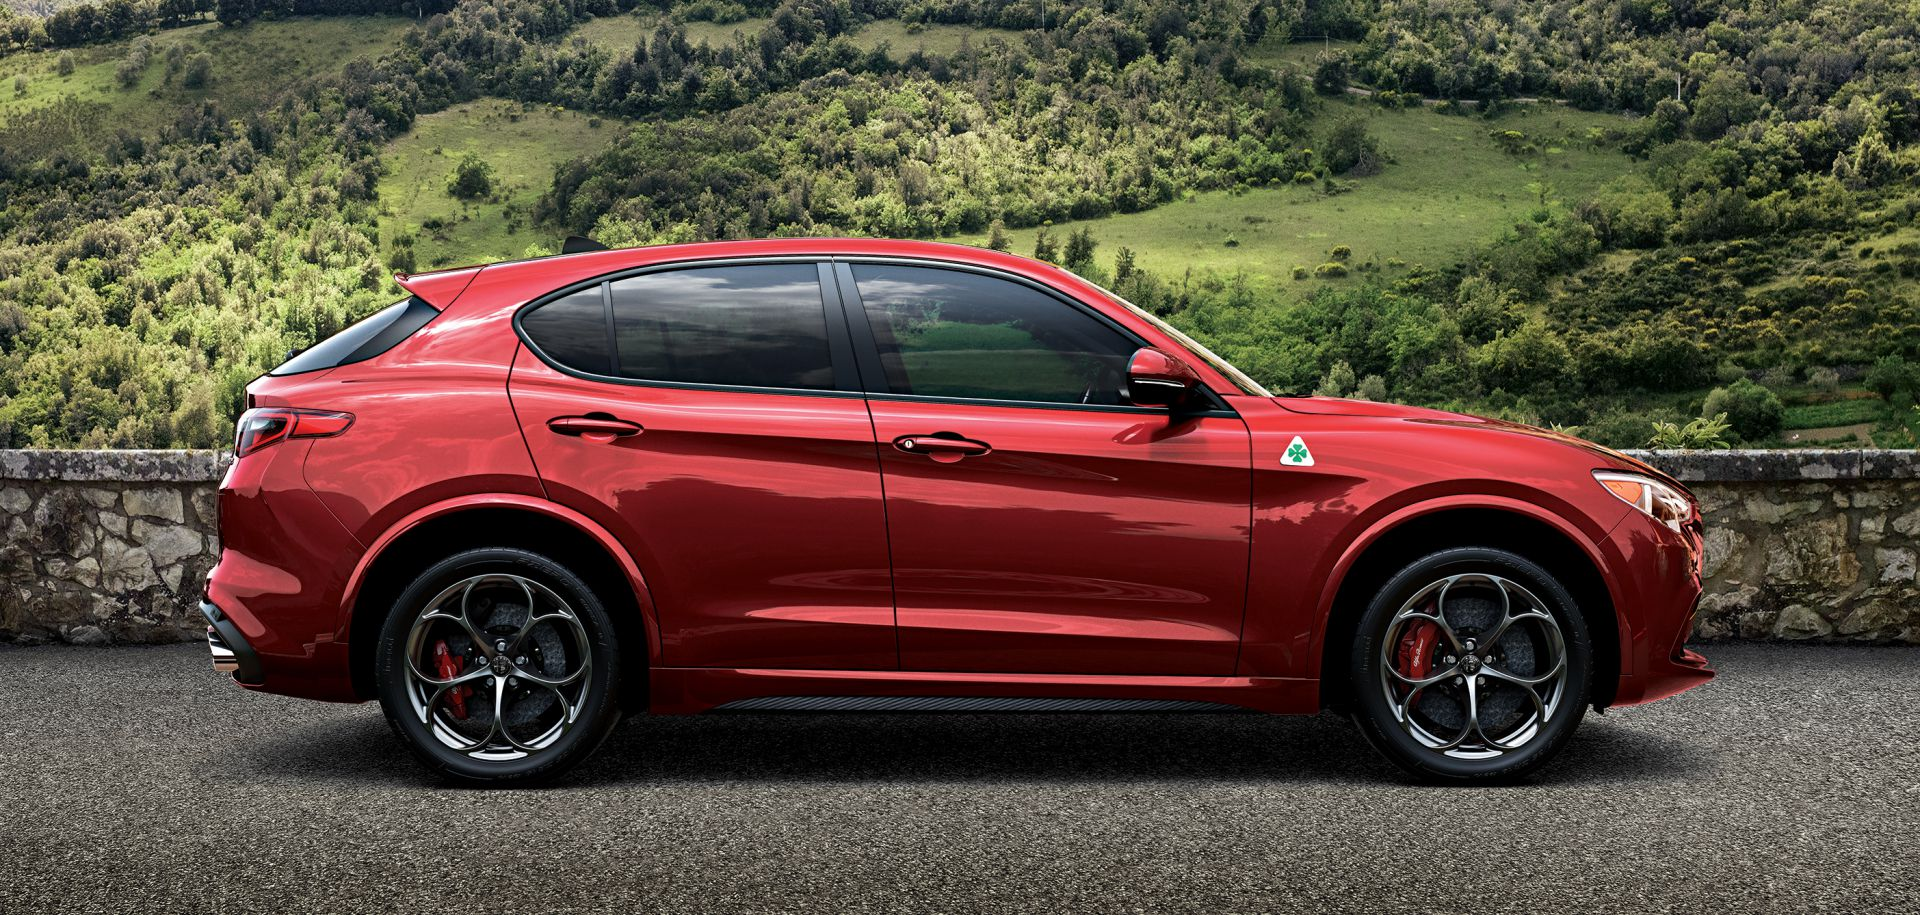 des roulements skf sur le nouveau alfa romeo stelvio evolution online. Black Bedroom Furniture Sets. Home Design Ideas